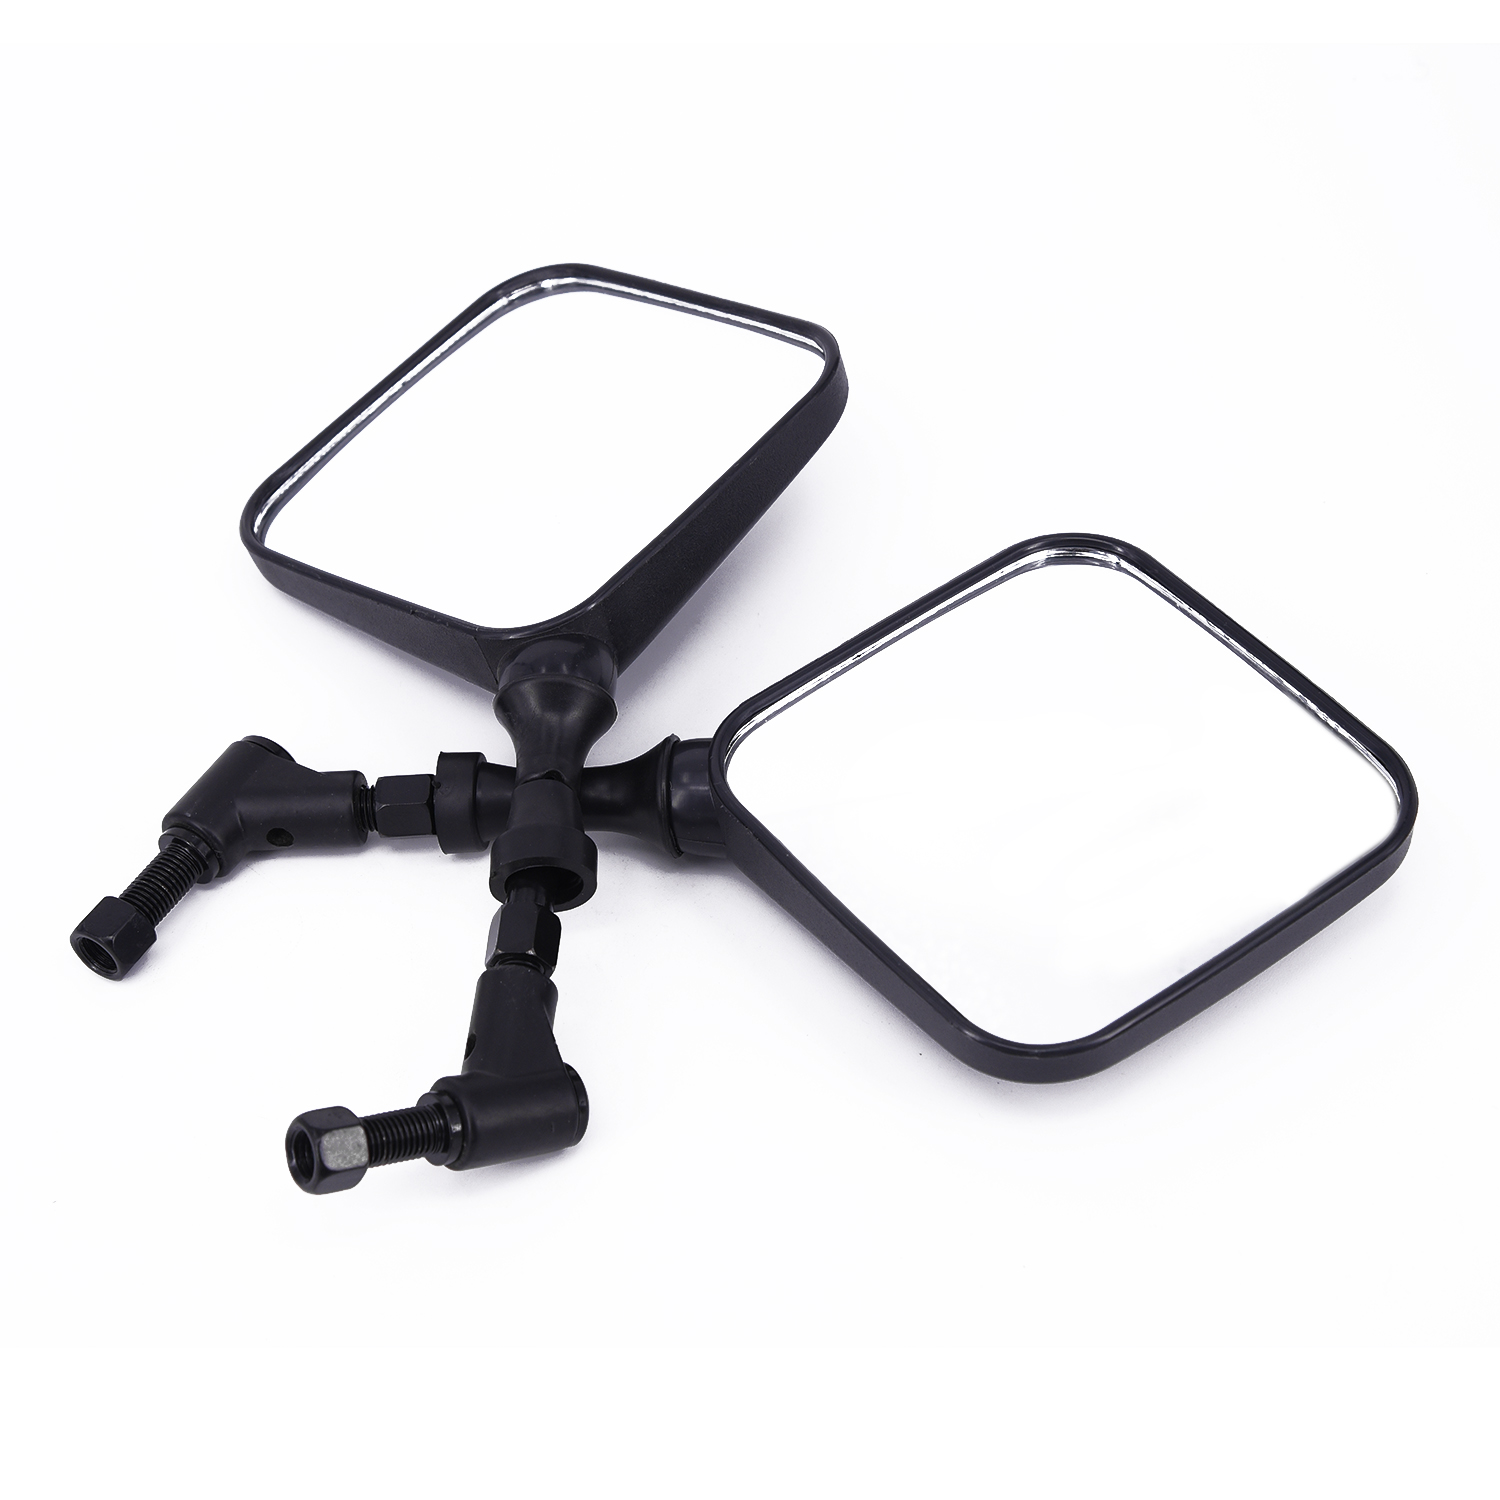 Motorcycle Rear View Mirrors Backup Durable For Suzuki <font><b>DR</b></font> <font><b>200</b></font> 250 DR350 DRZ 400 650 DR650 2x image